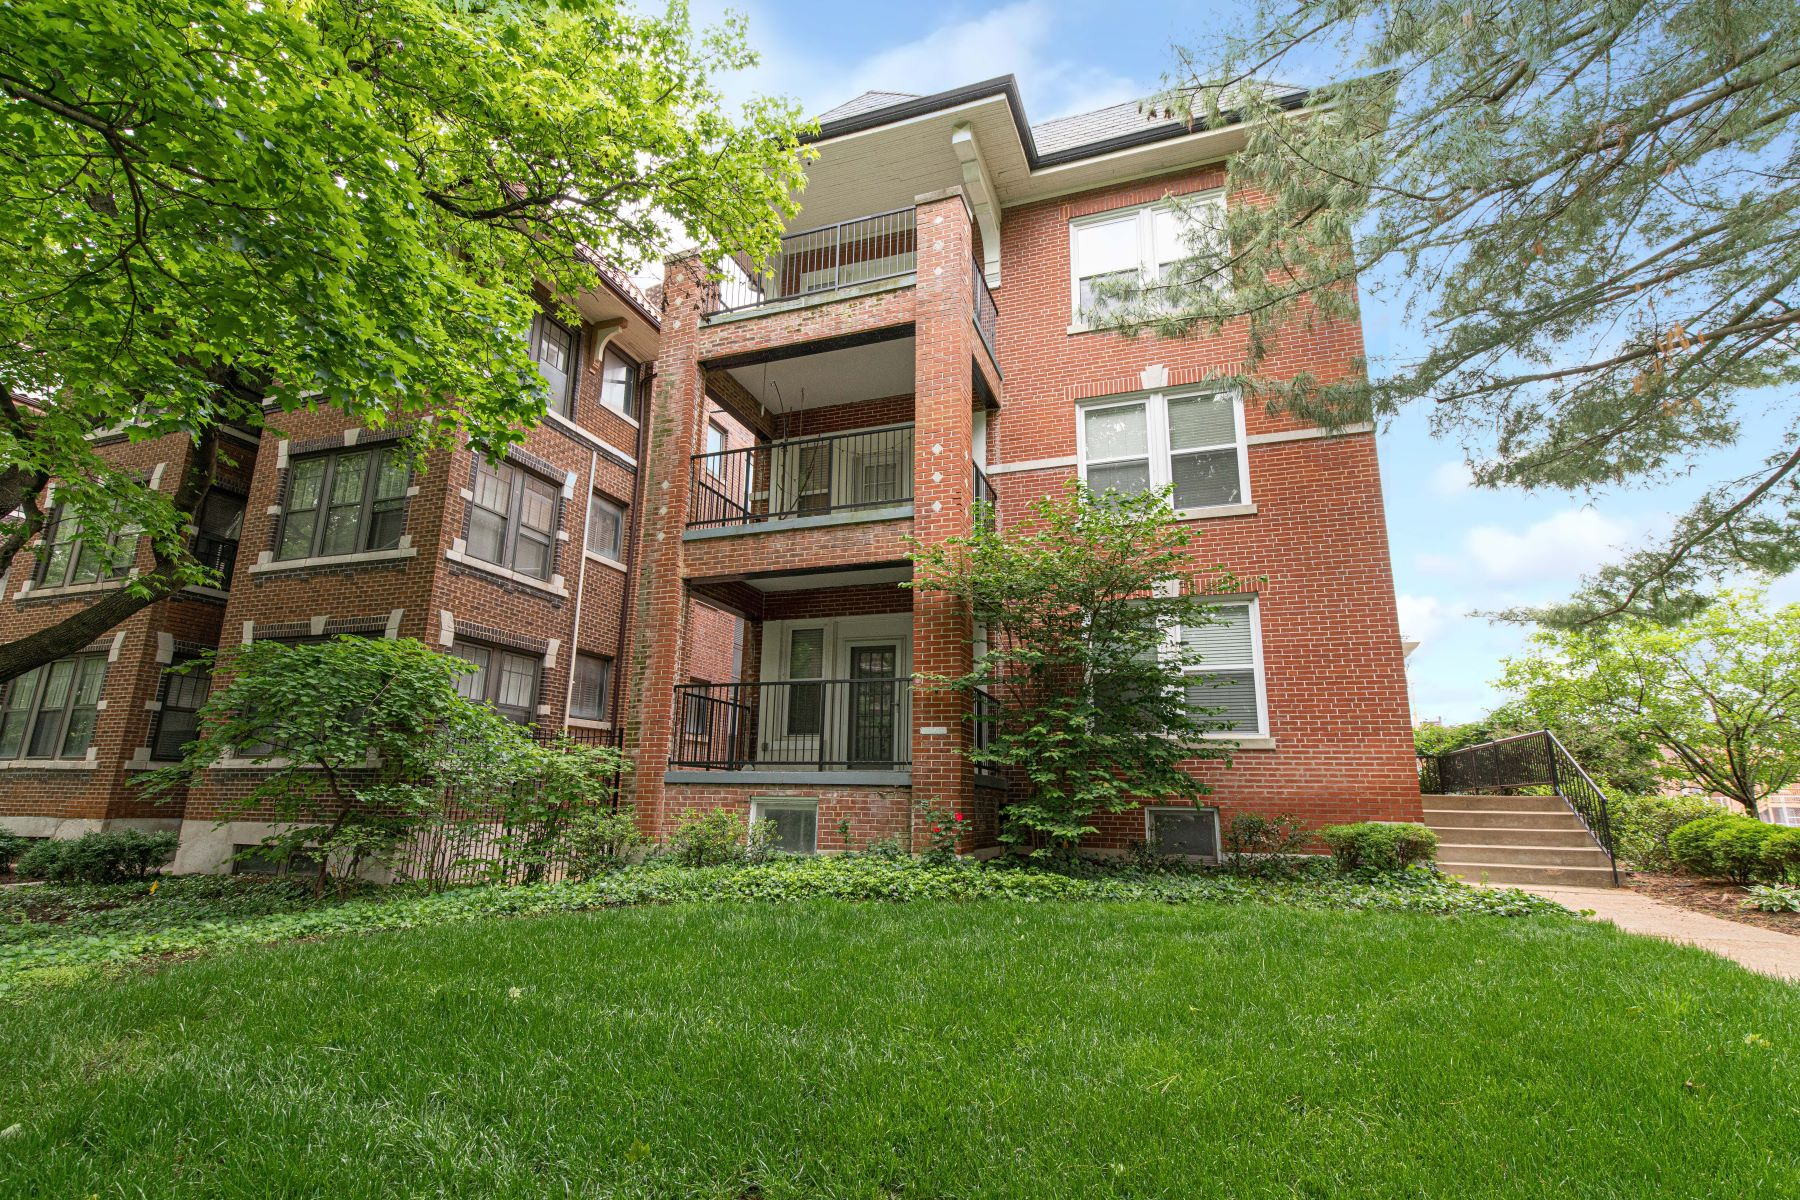 Condominiums for Sale at Charming Condo on Waterman Boulevard 5528 Waterman Boulevard, #22 St. Louis, Missouri 63112 United States